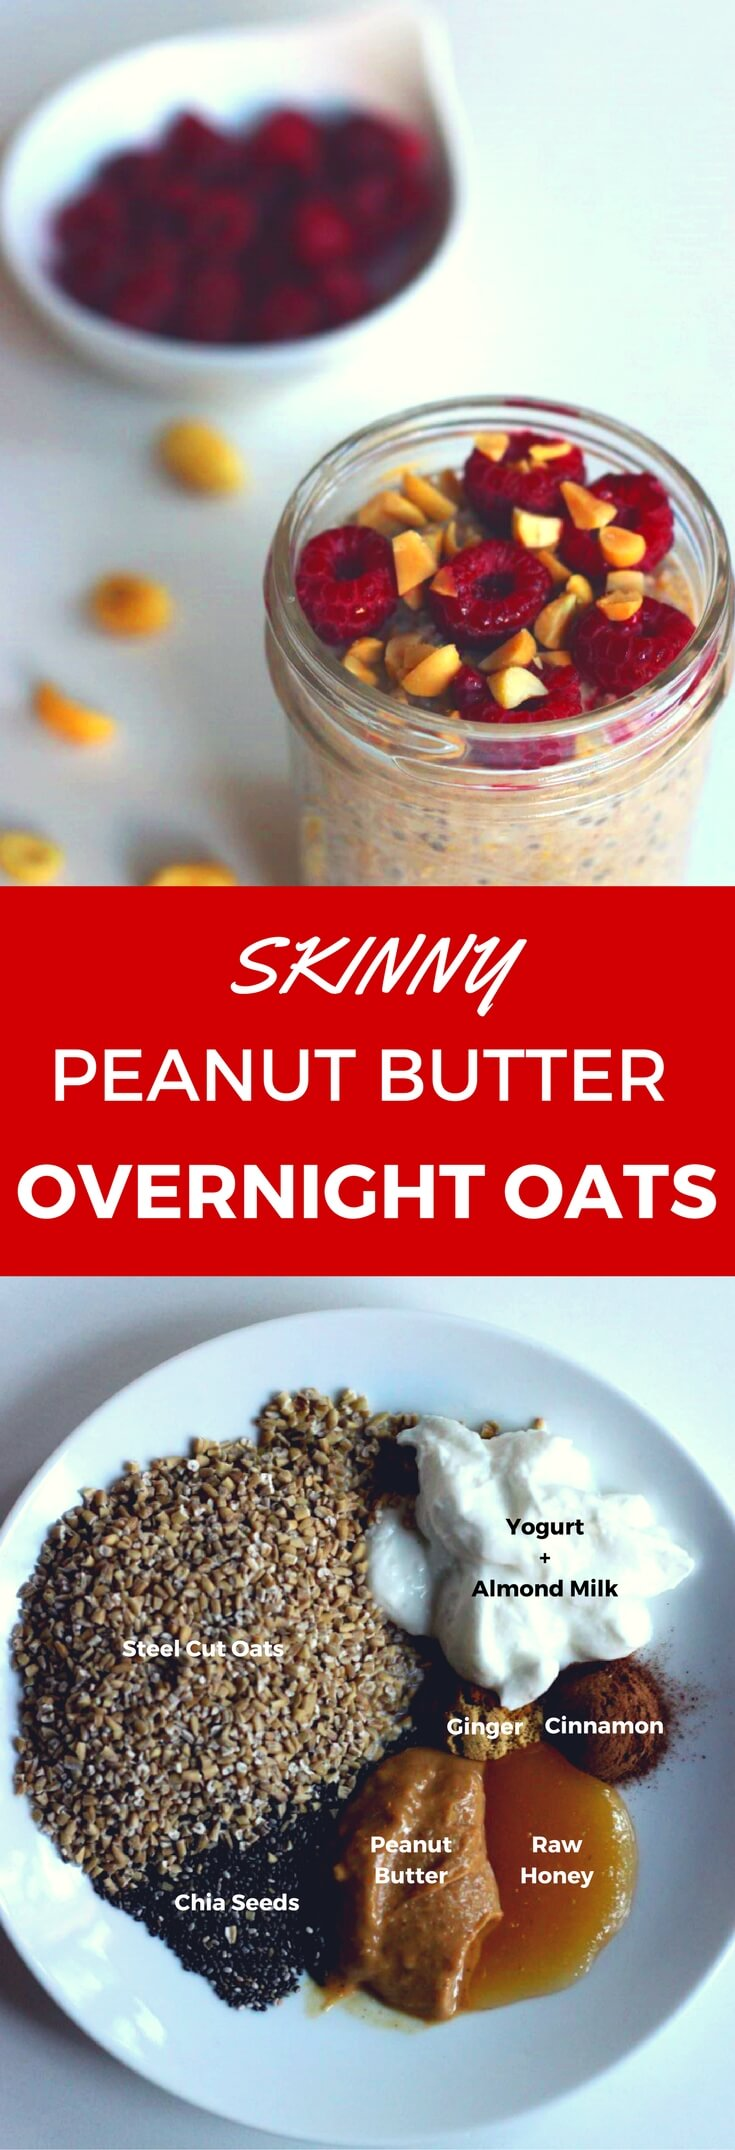 This healthy peanut butter overnight oats can be made in a jar for an easy and delicious grab-and-go breakfast or snack.  The recipe uses steel cut oats, almond milk, and is powered with high protein from the chia seeds, yogurt and peanut butter.  Cinnamon and ginger spices are added to boost metabolism and weightloss.